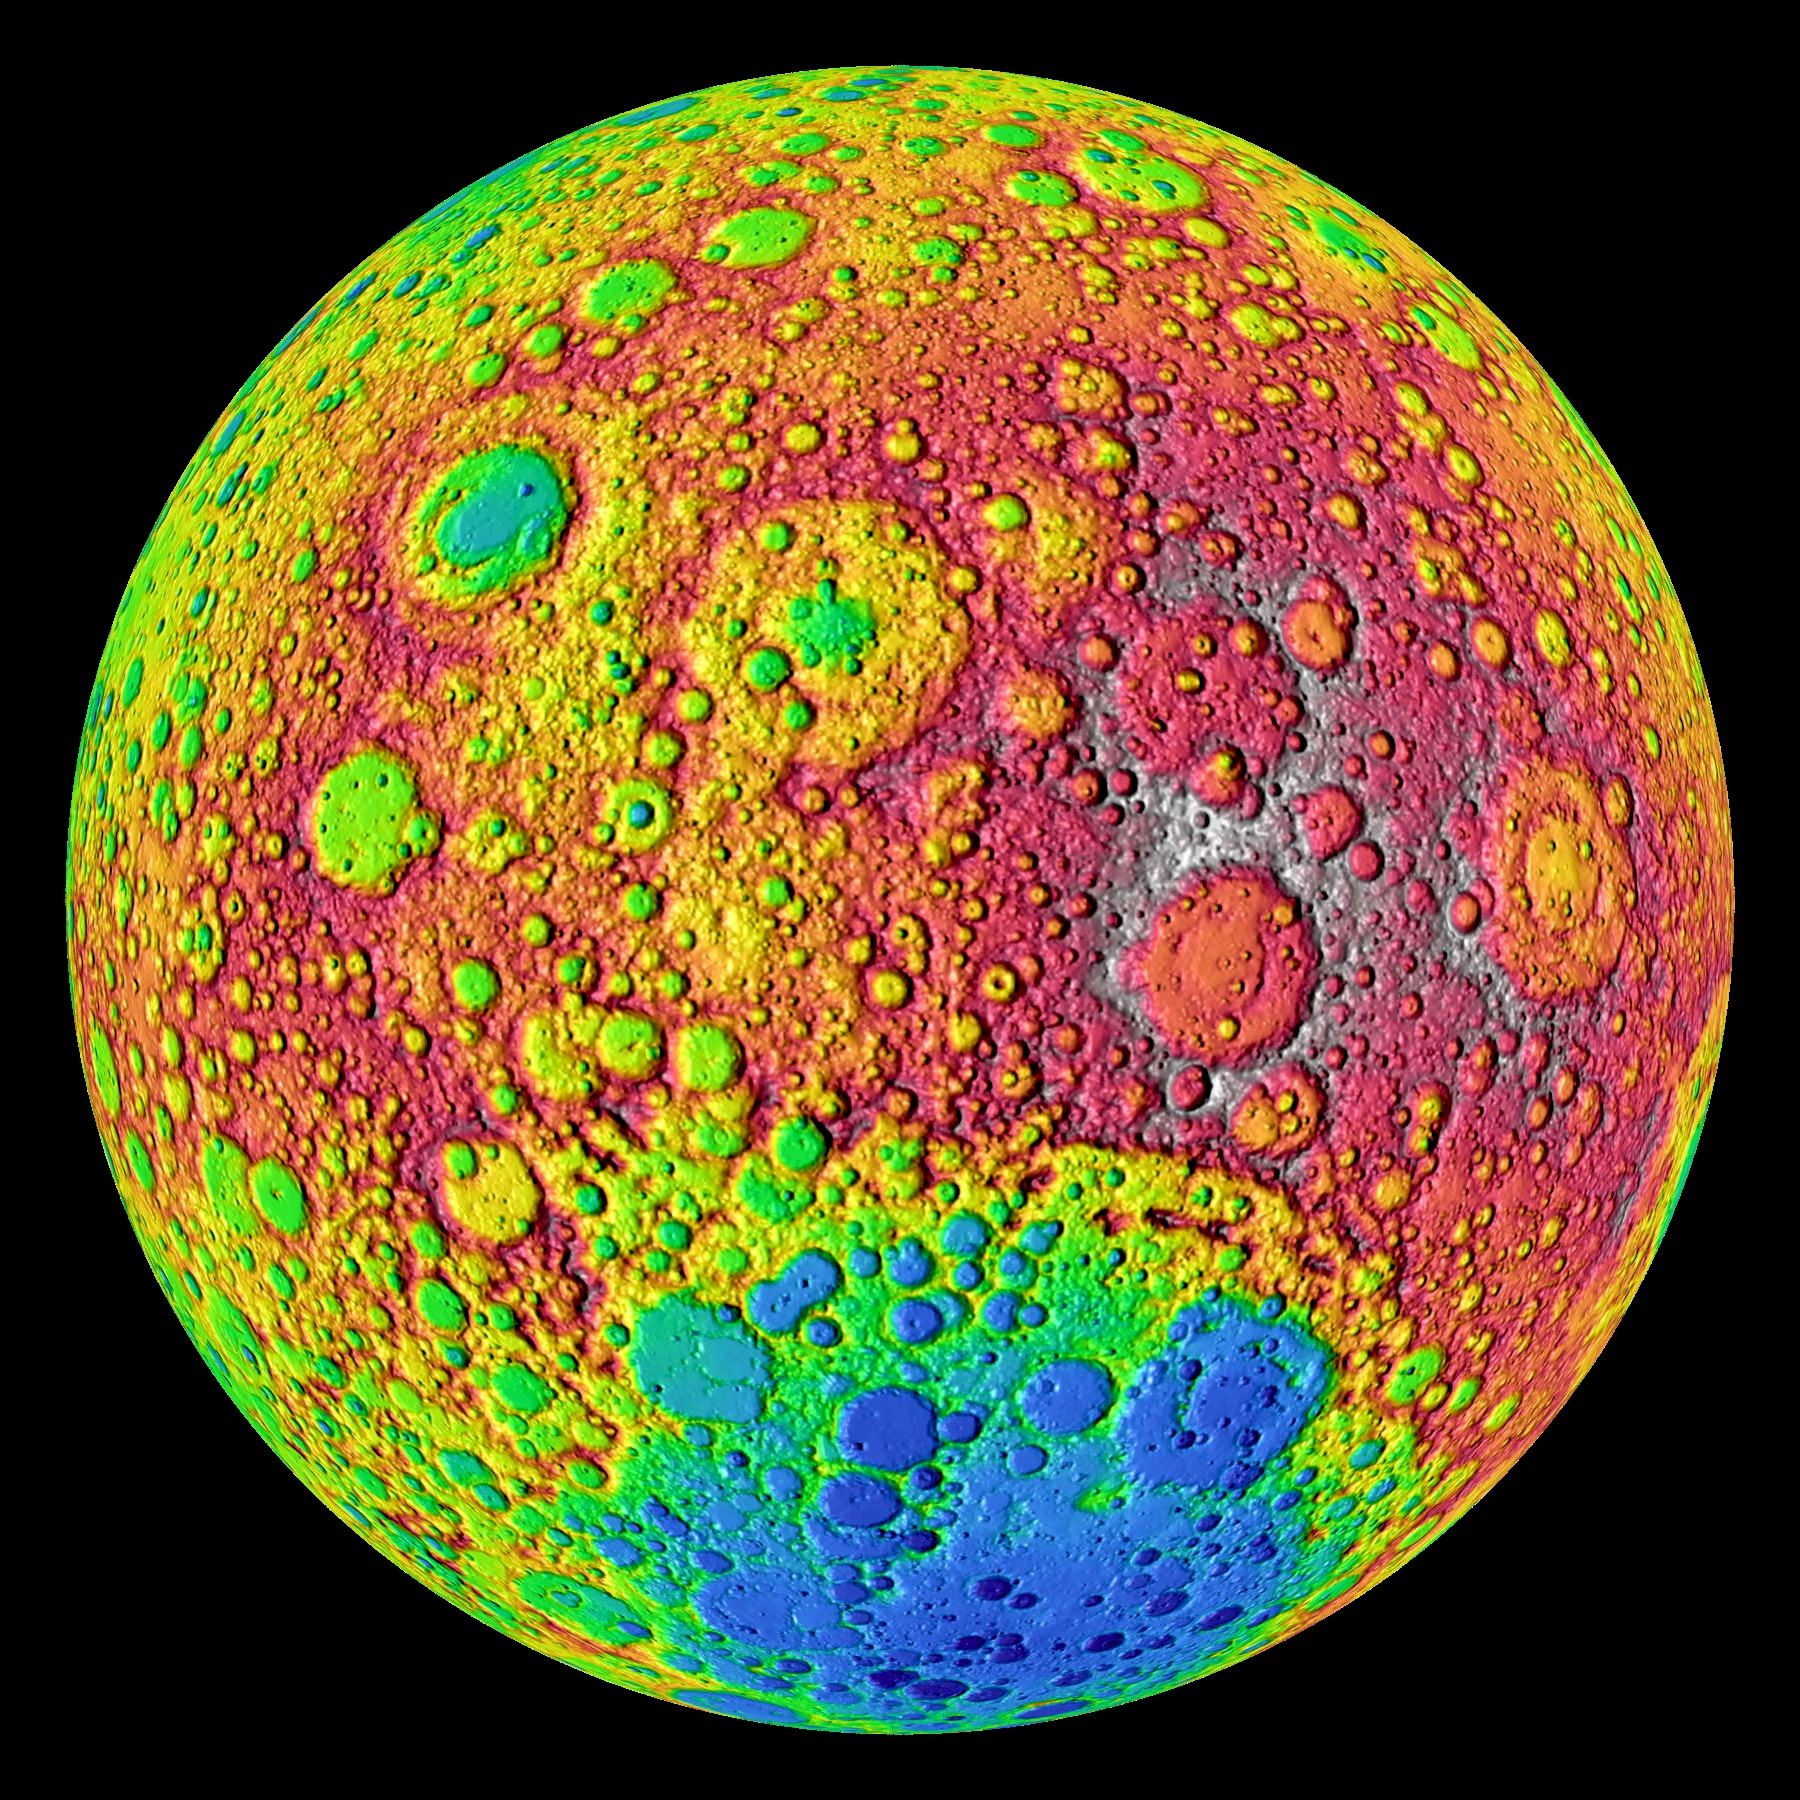 Topography of the so-called dark side of the moon as photographed by on